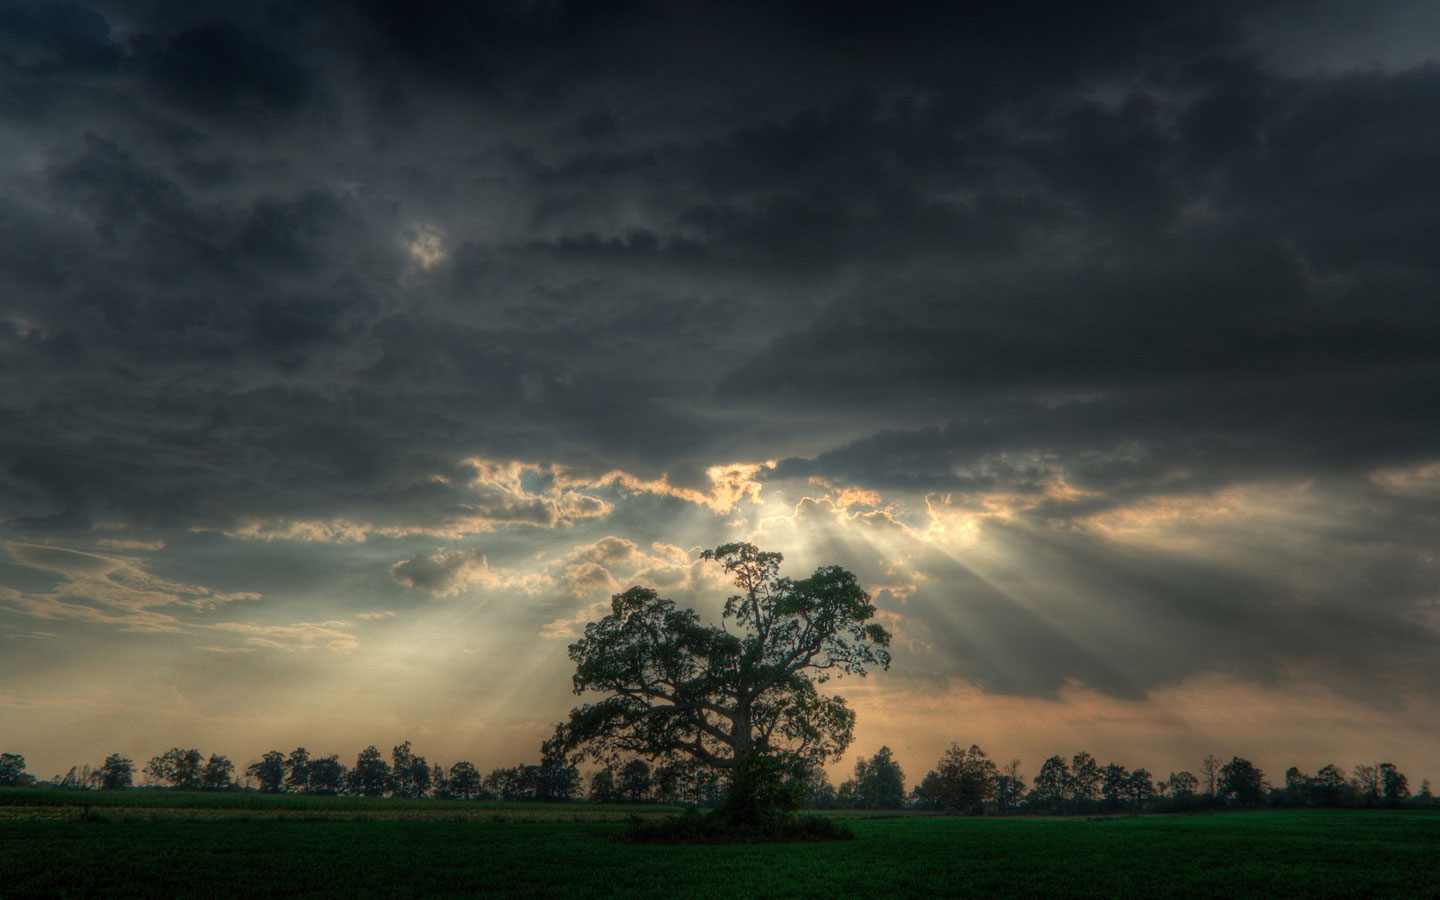 The rays of the sun through the clouds